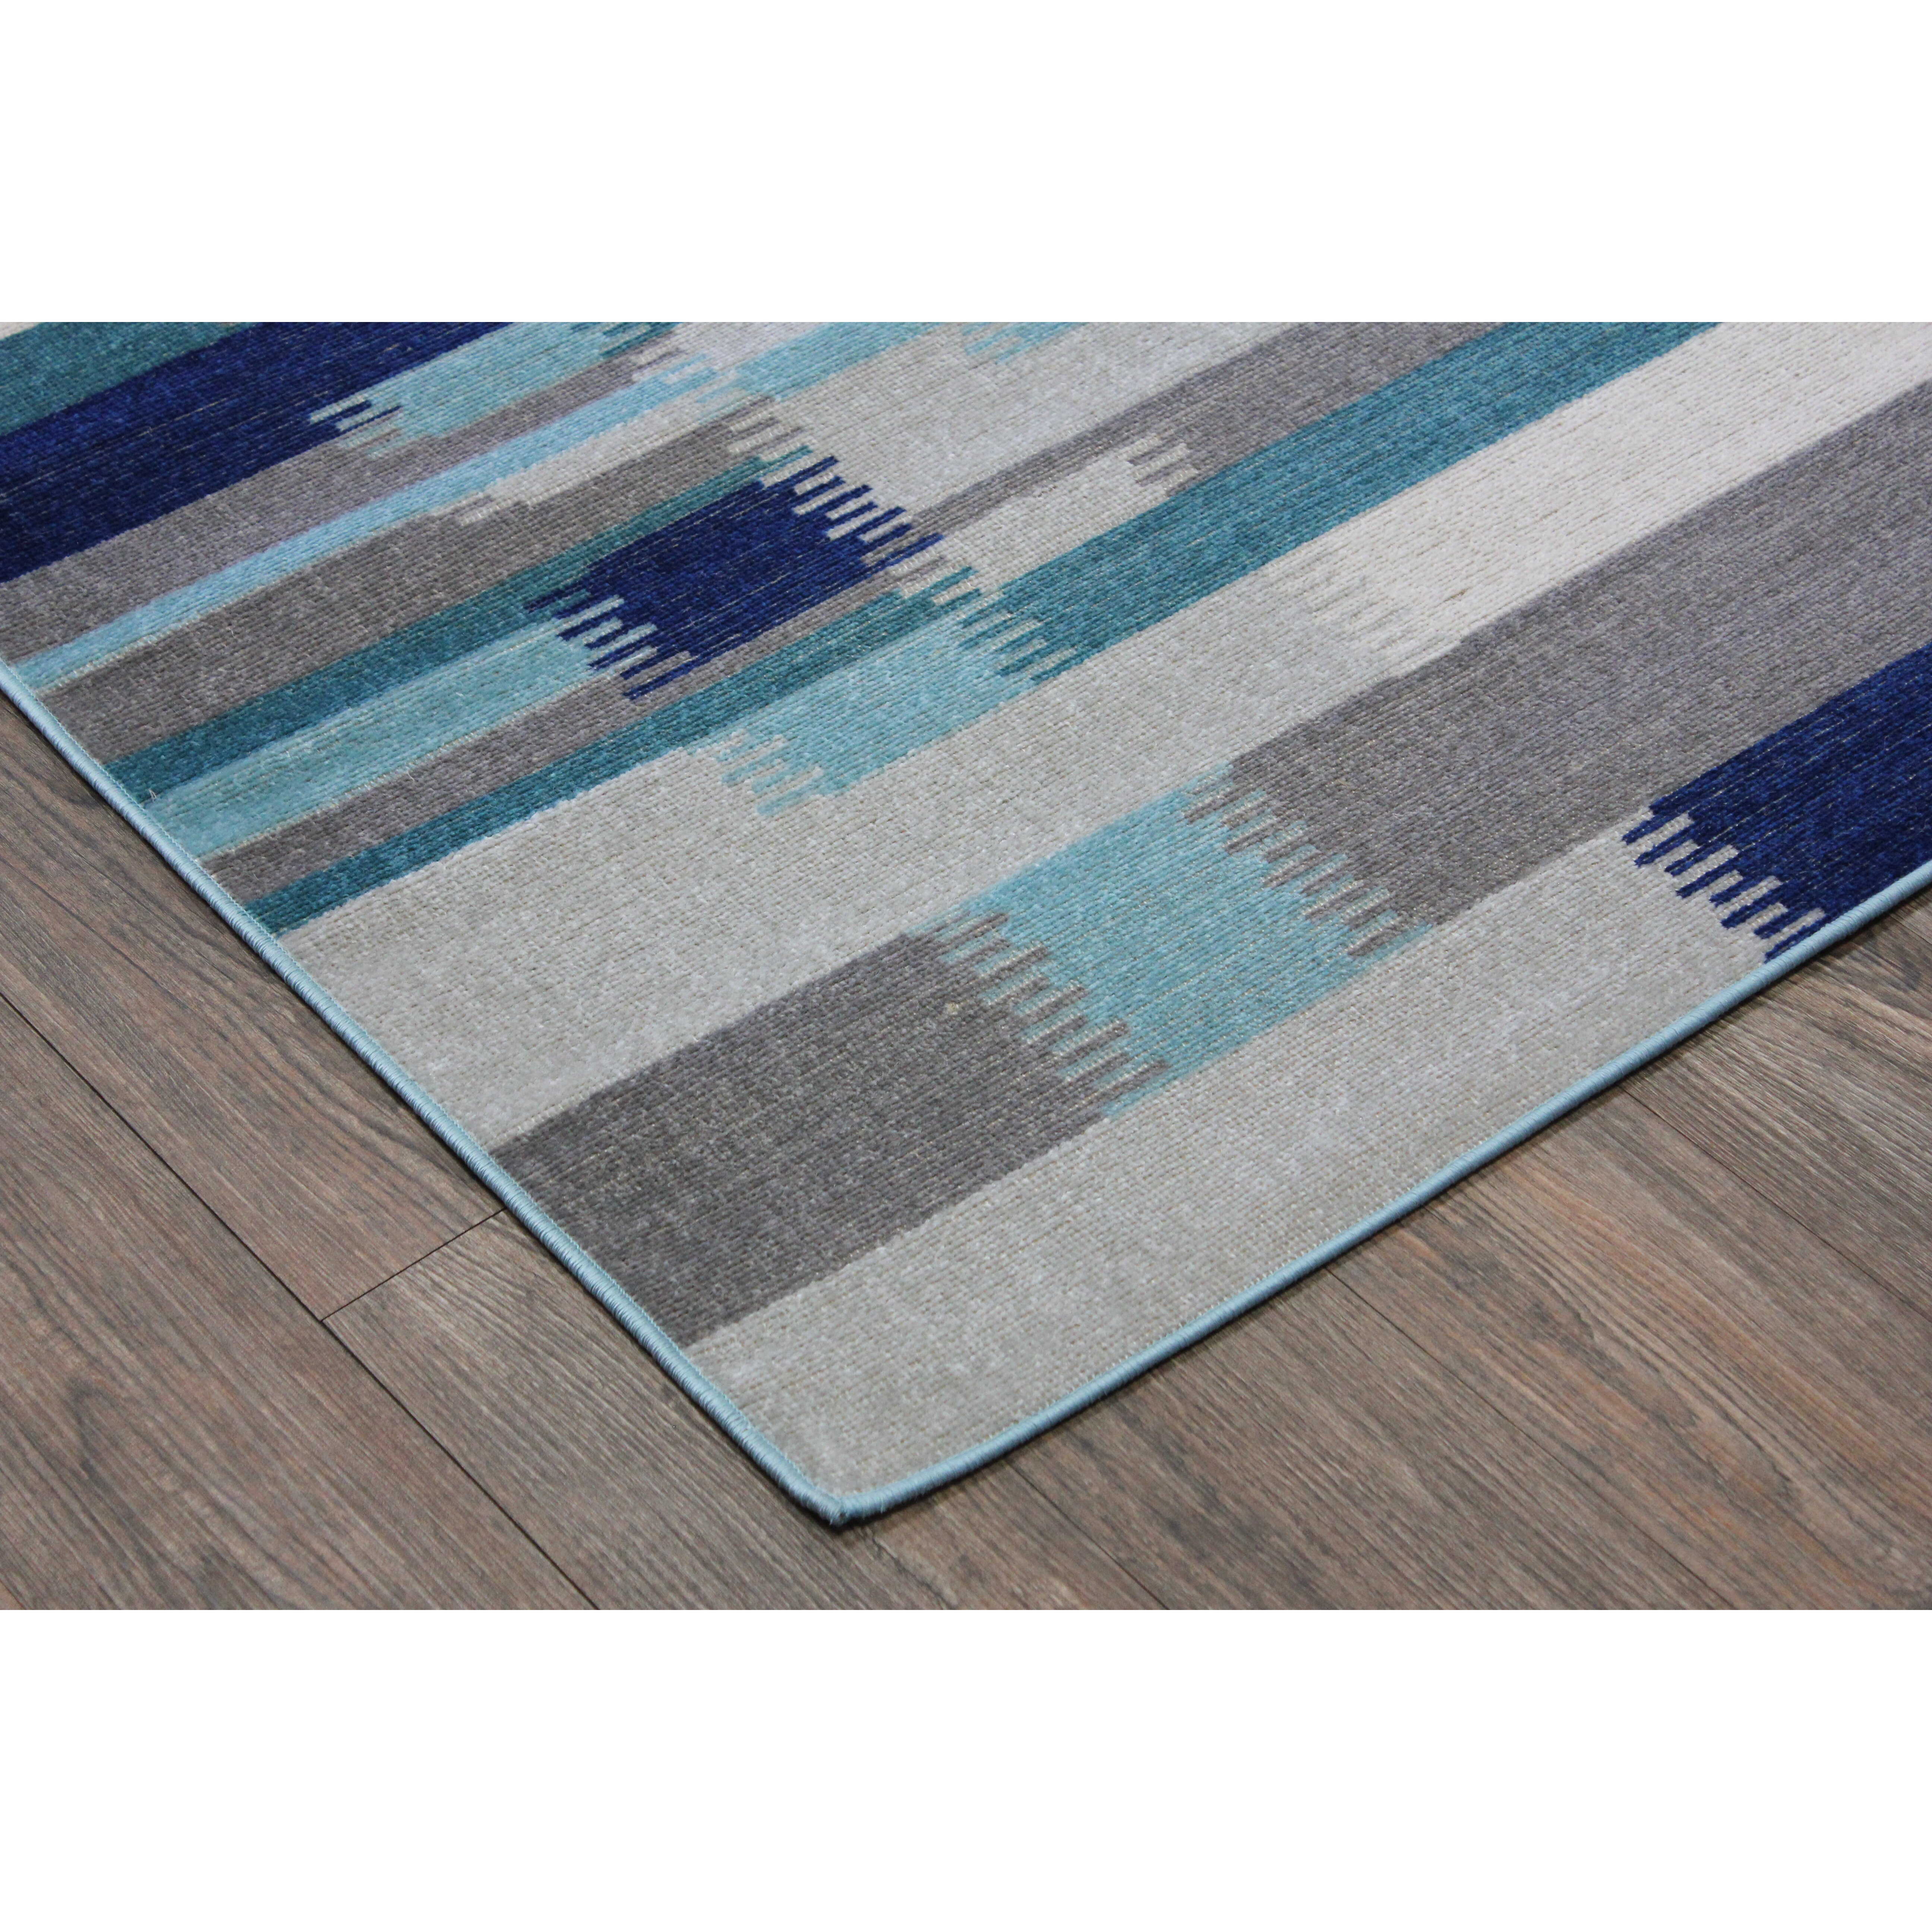 Rug Factory Plus Kilim Blue / Teal Area Rug